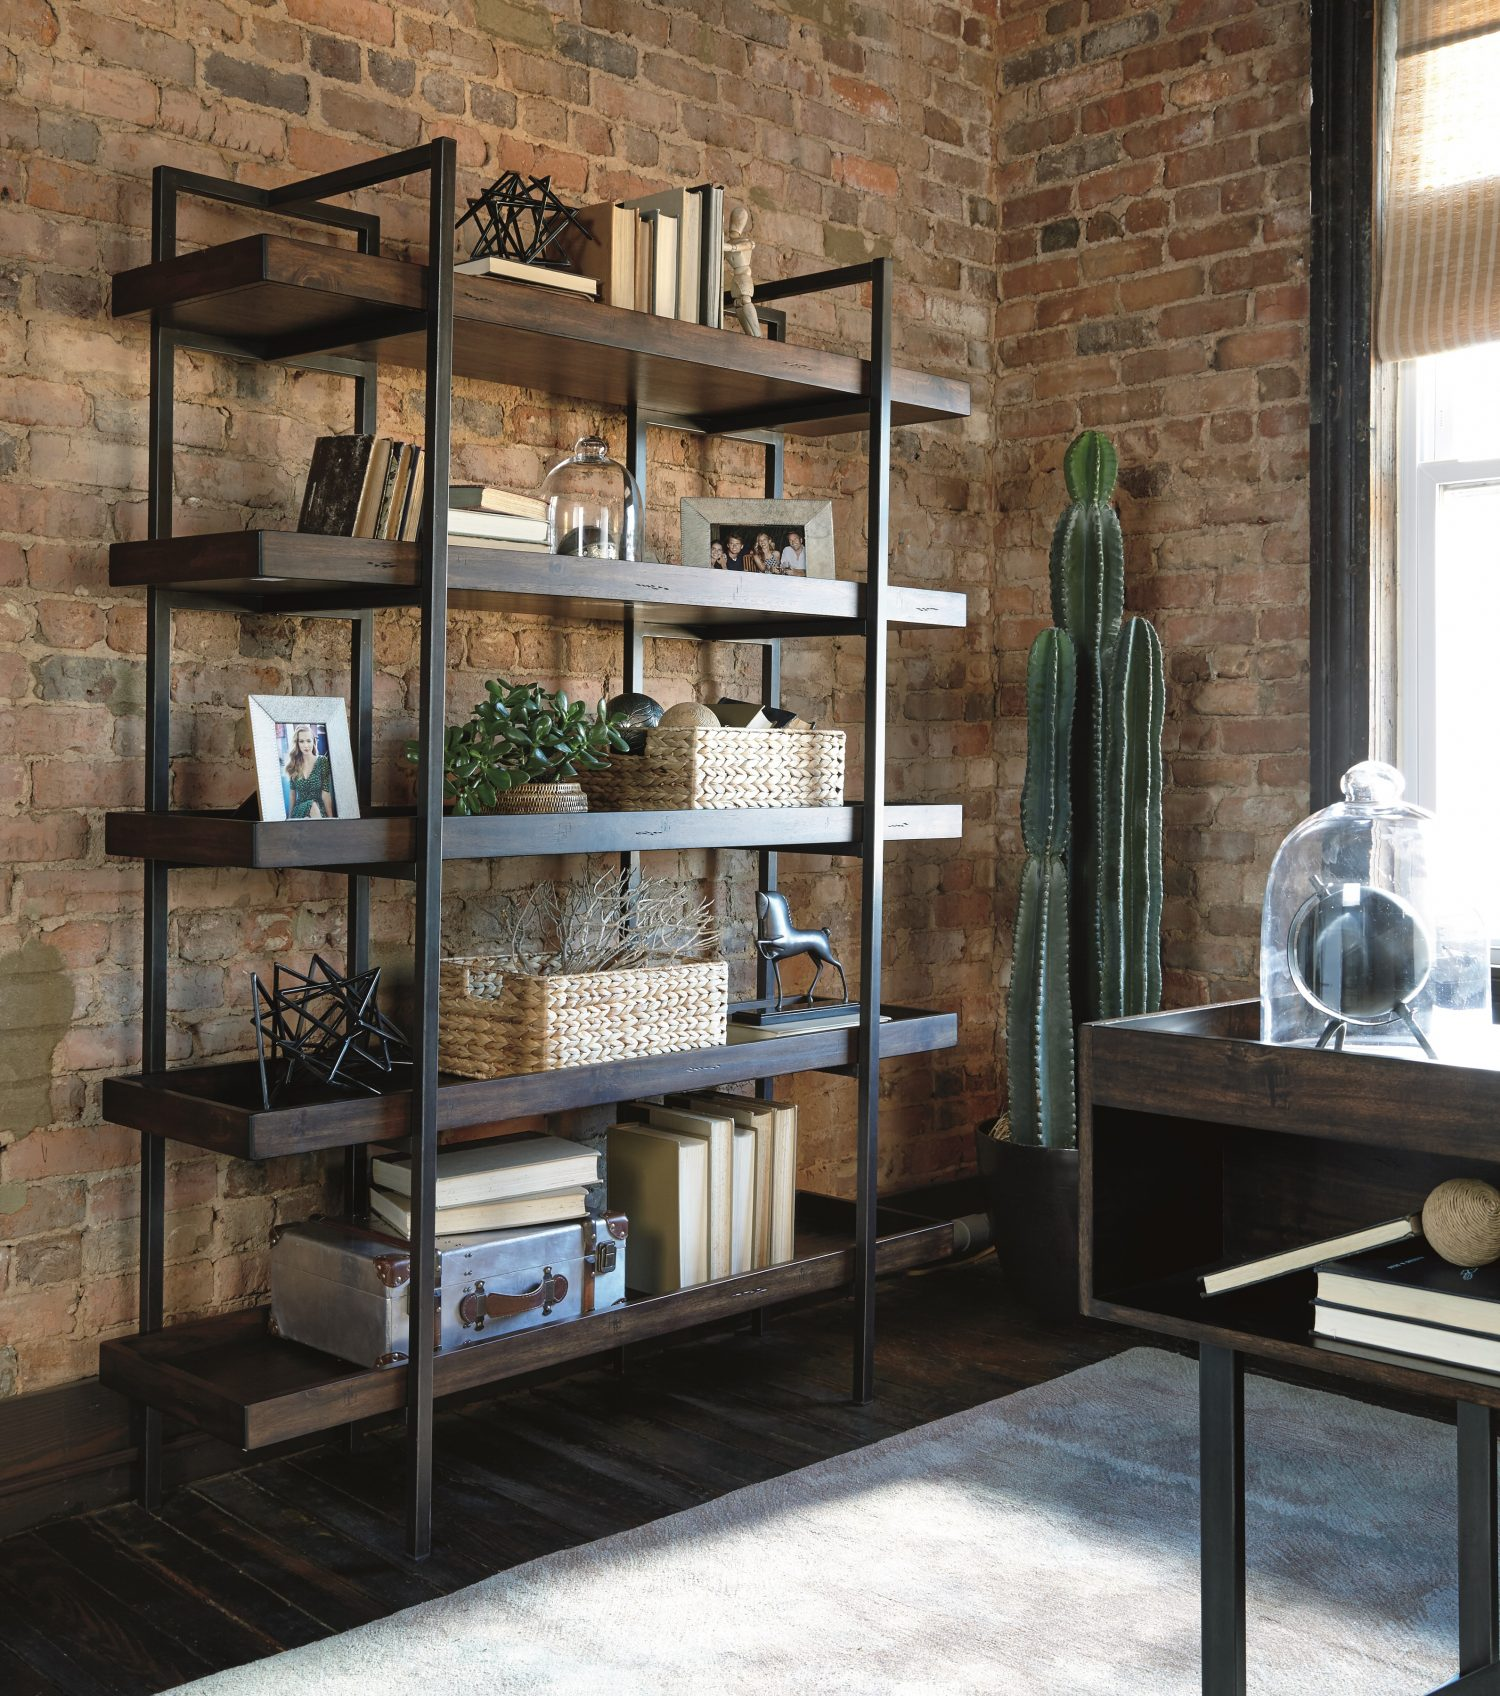 Ashley Furniture Corporate Headquarters: Find The Perfect Spot For Your Bookcases And Cabinets